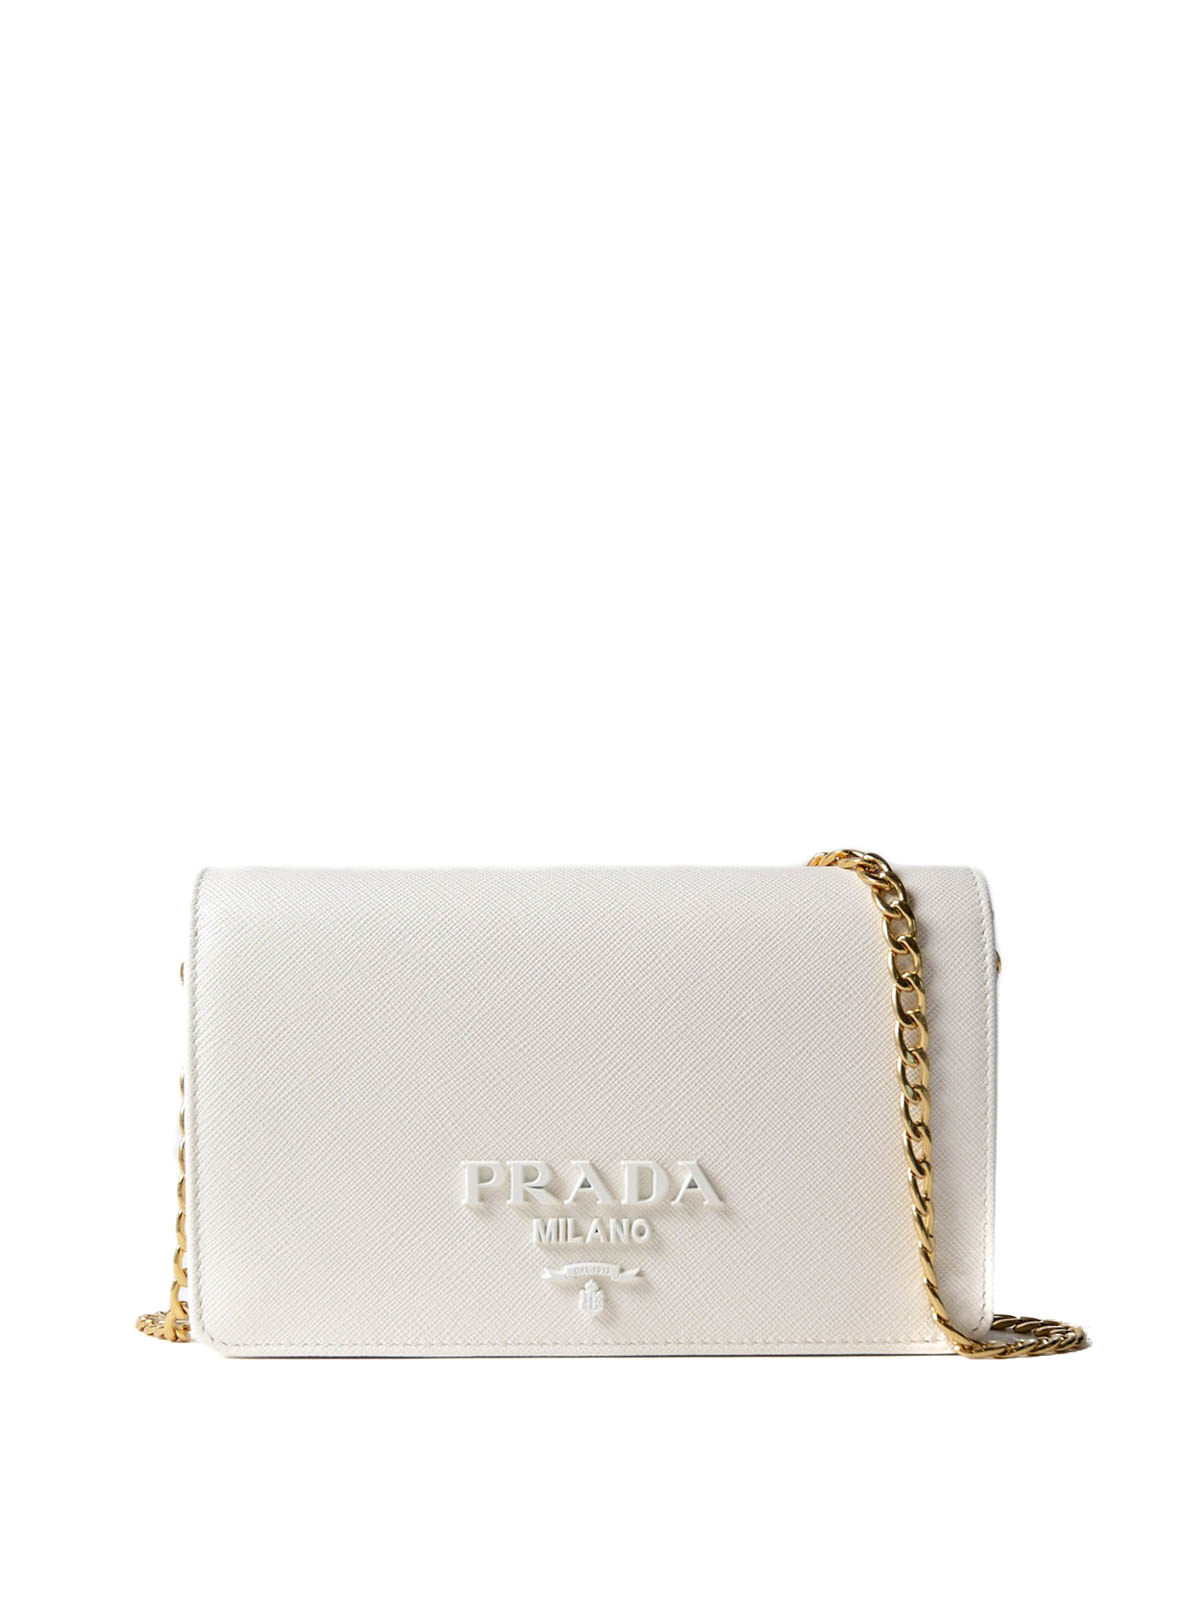 fd8d289787e3 16db2 b3ec6 low price prada clutches monochrome saffiano wallet bag 6ead0  89e5c ...